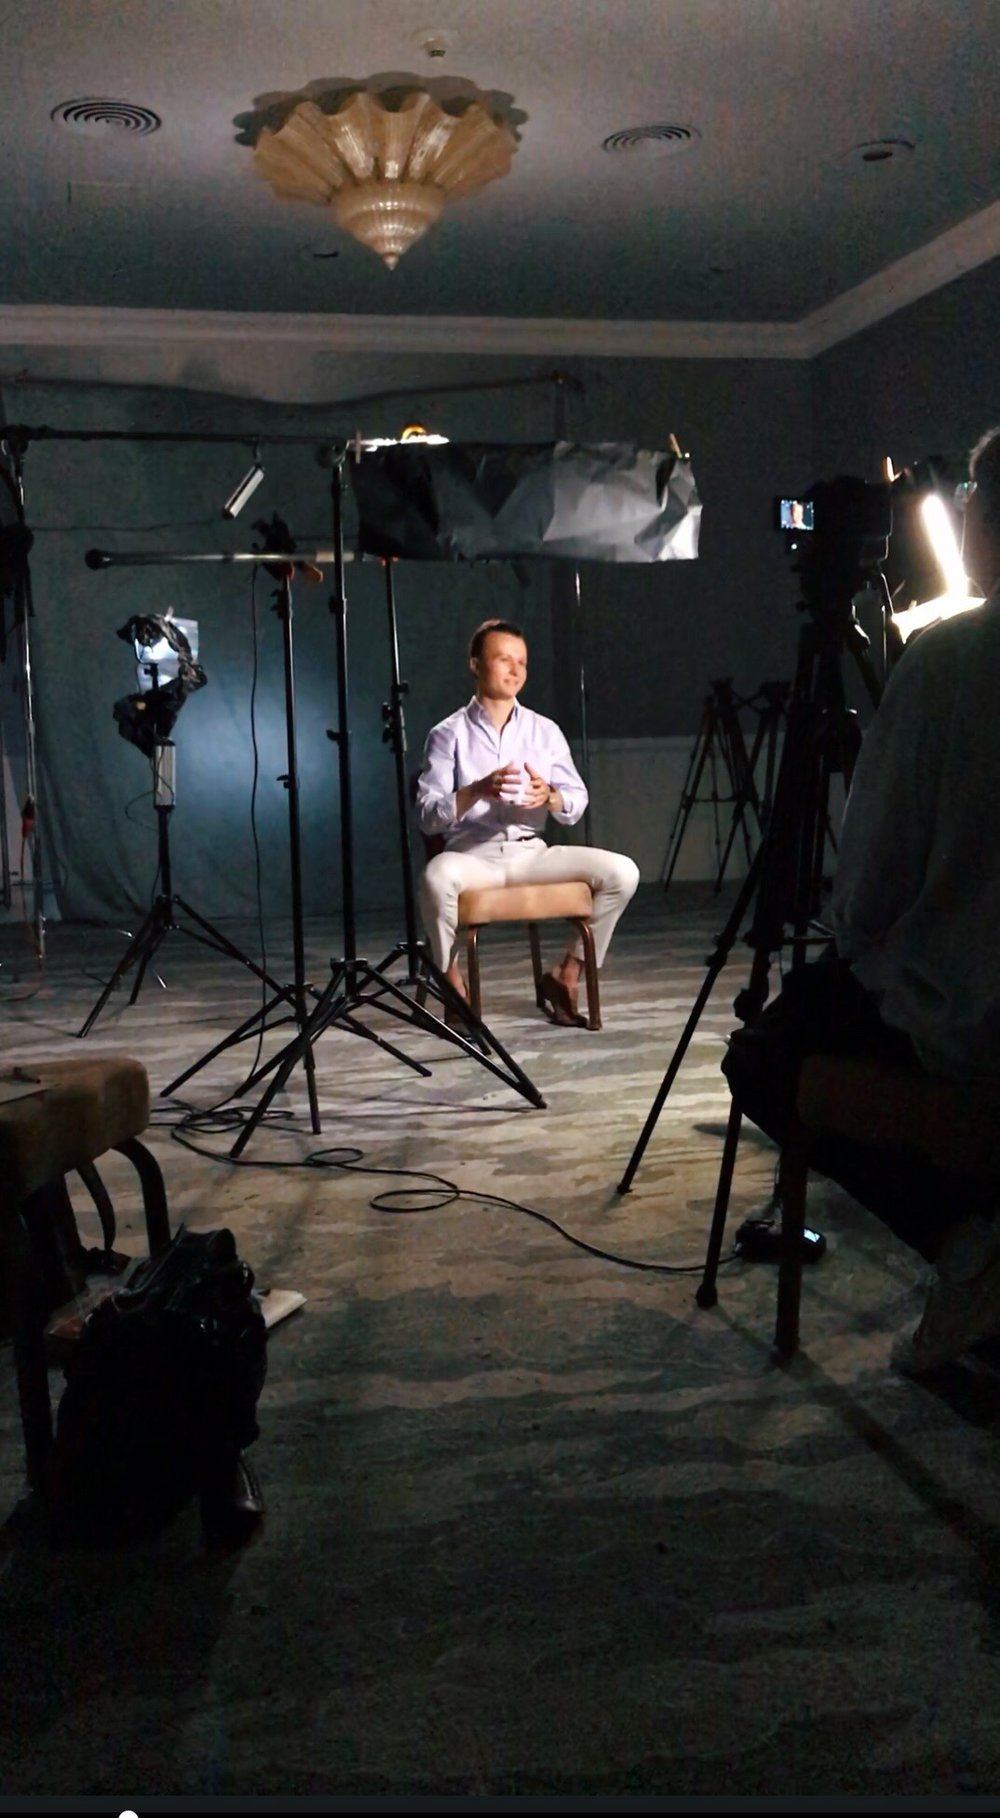 Behind the scenes of our CMO discussing stem cells in an upcoming documentary.